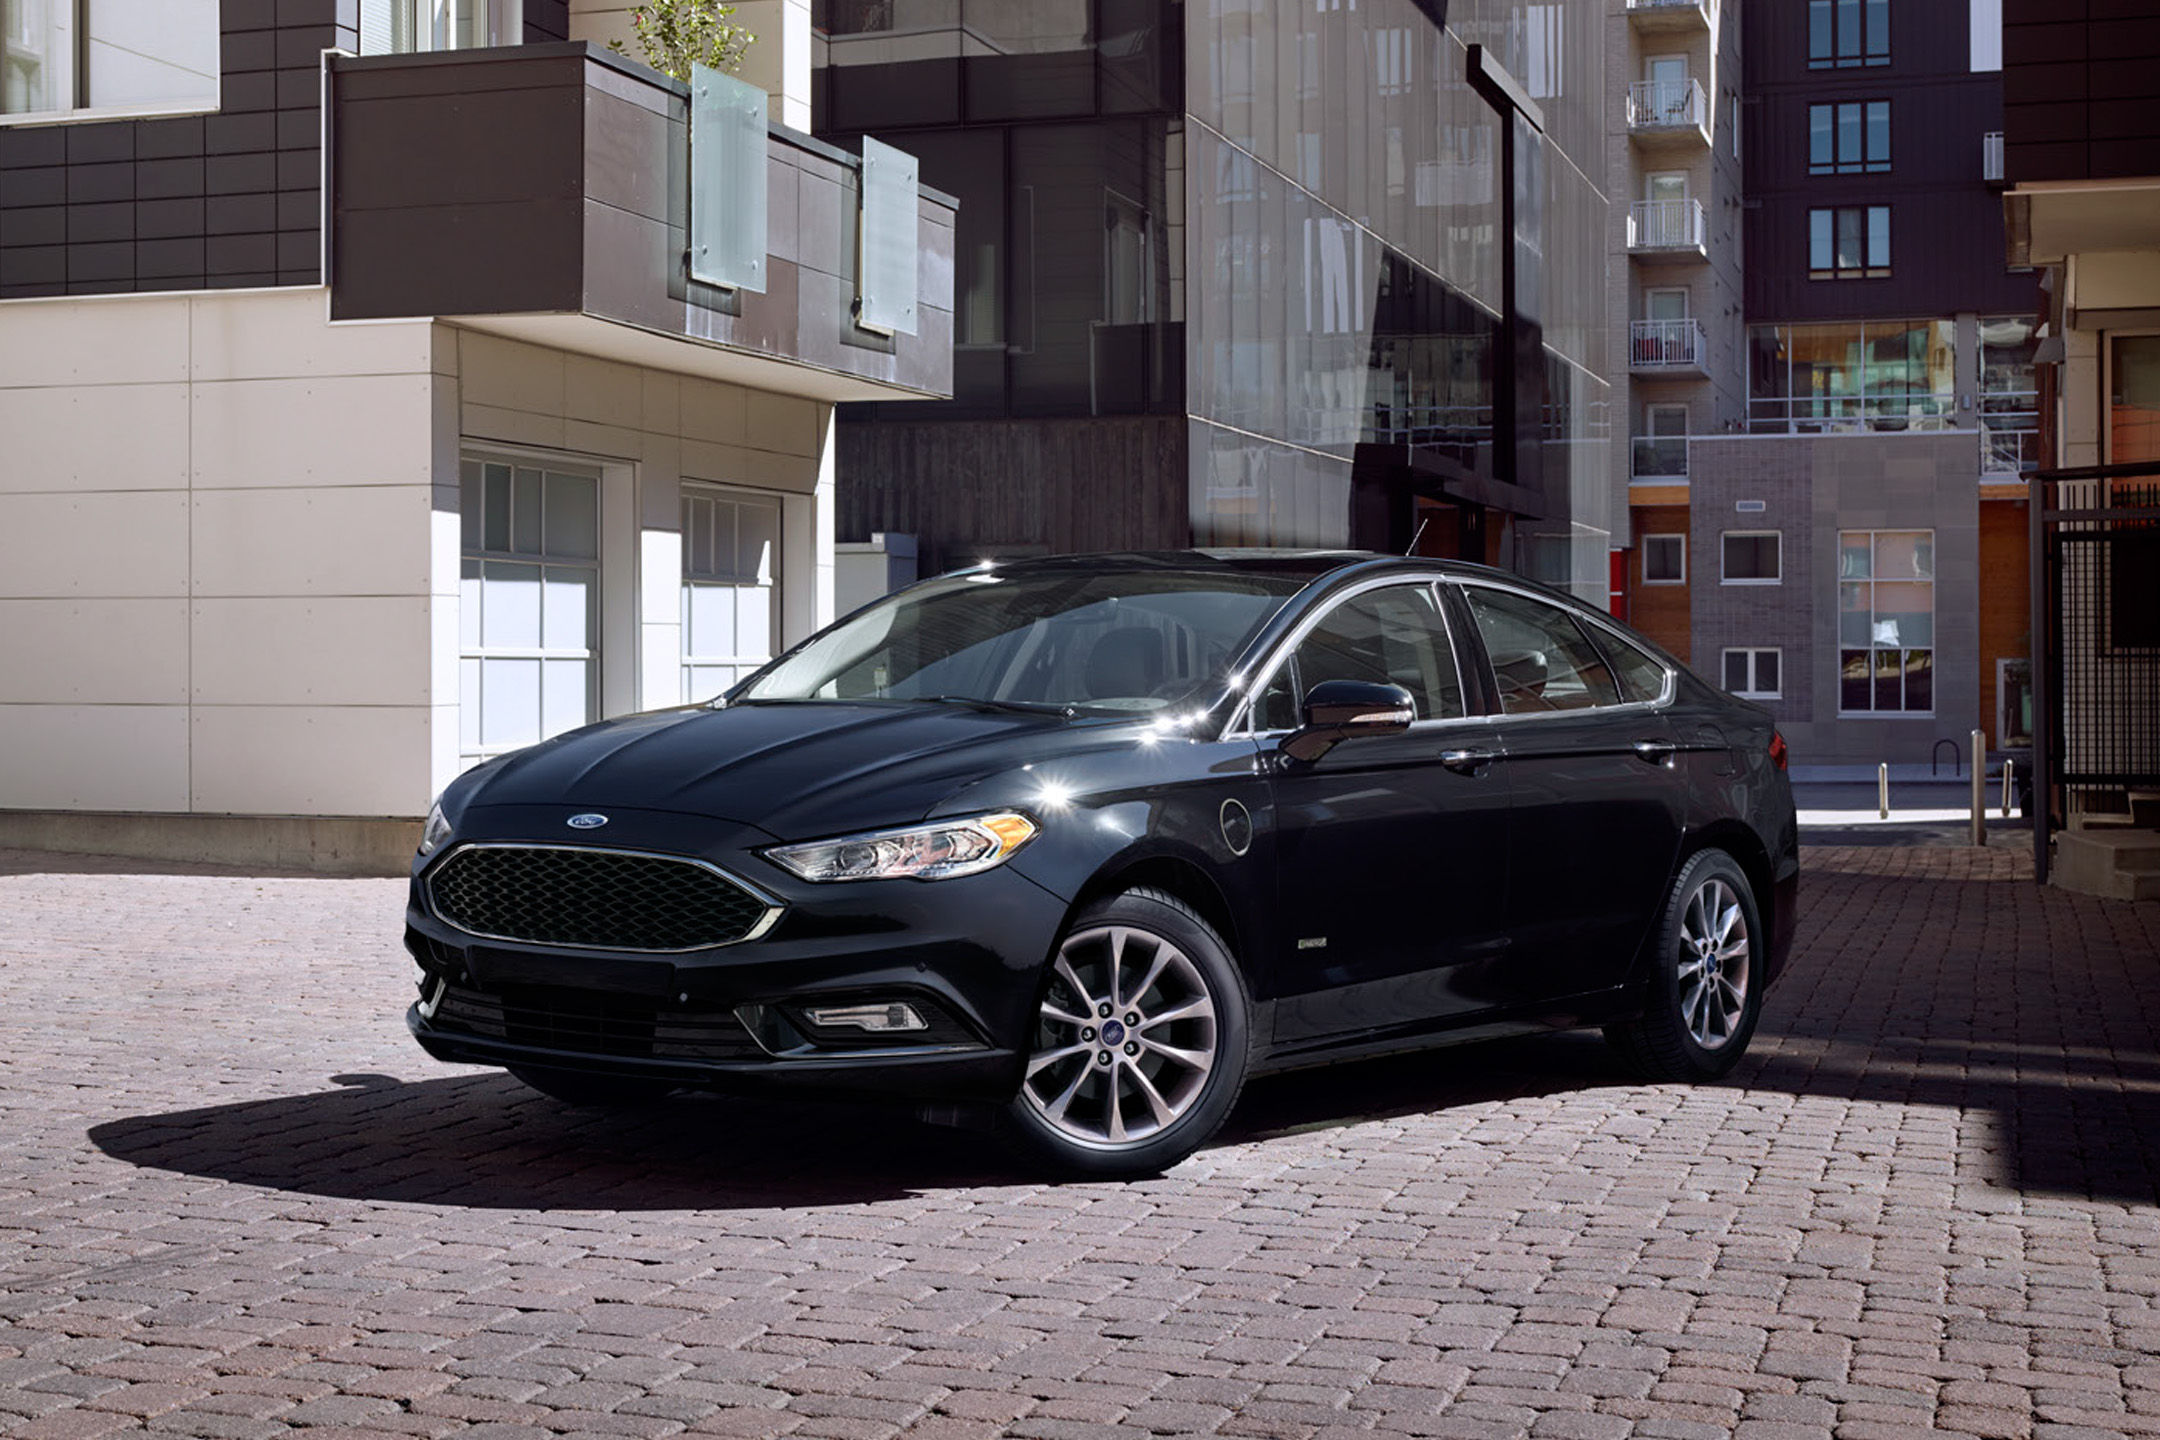 The Stylish Ford Fusion